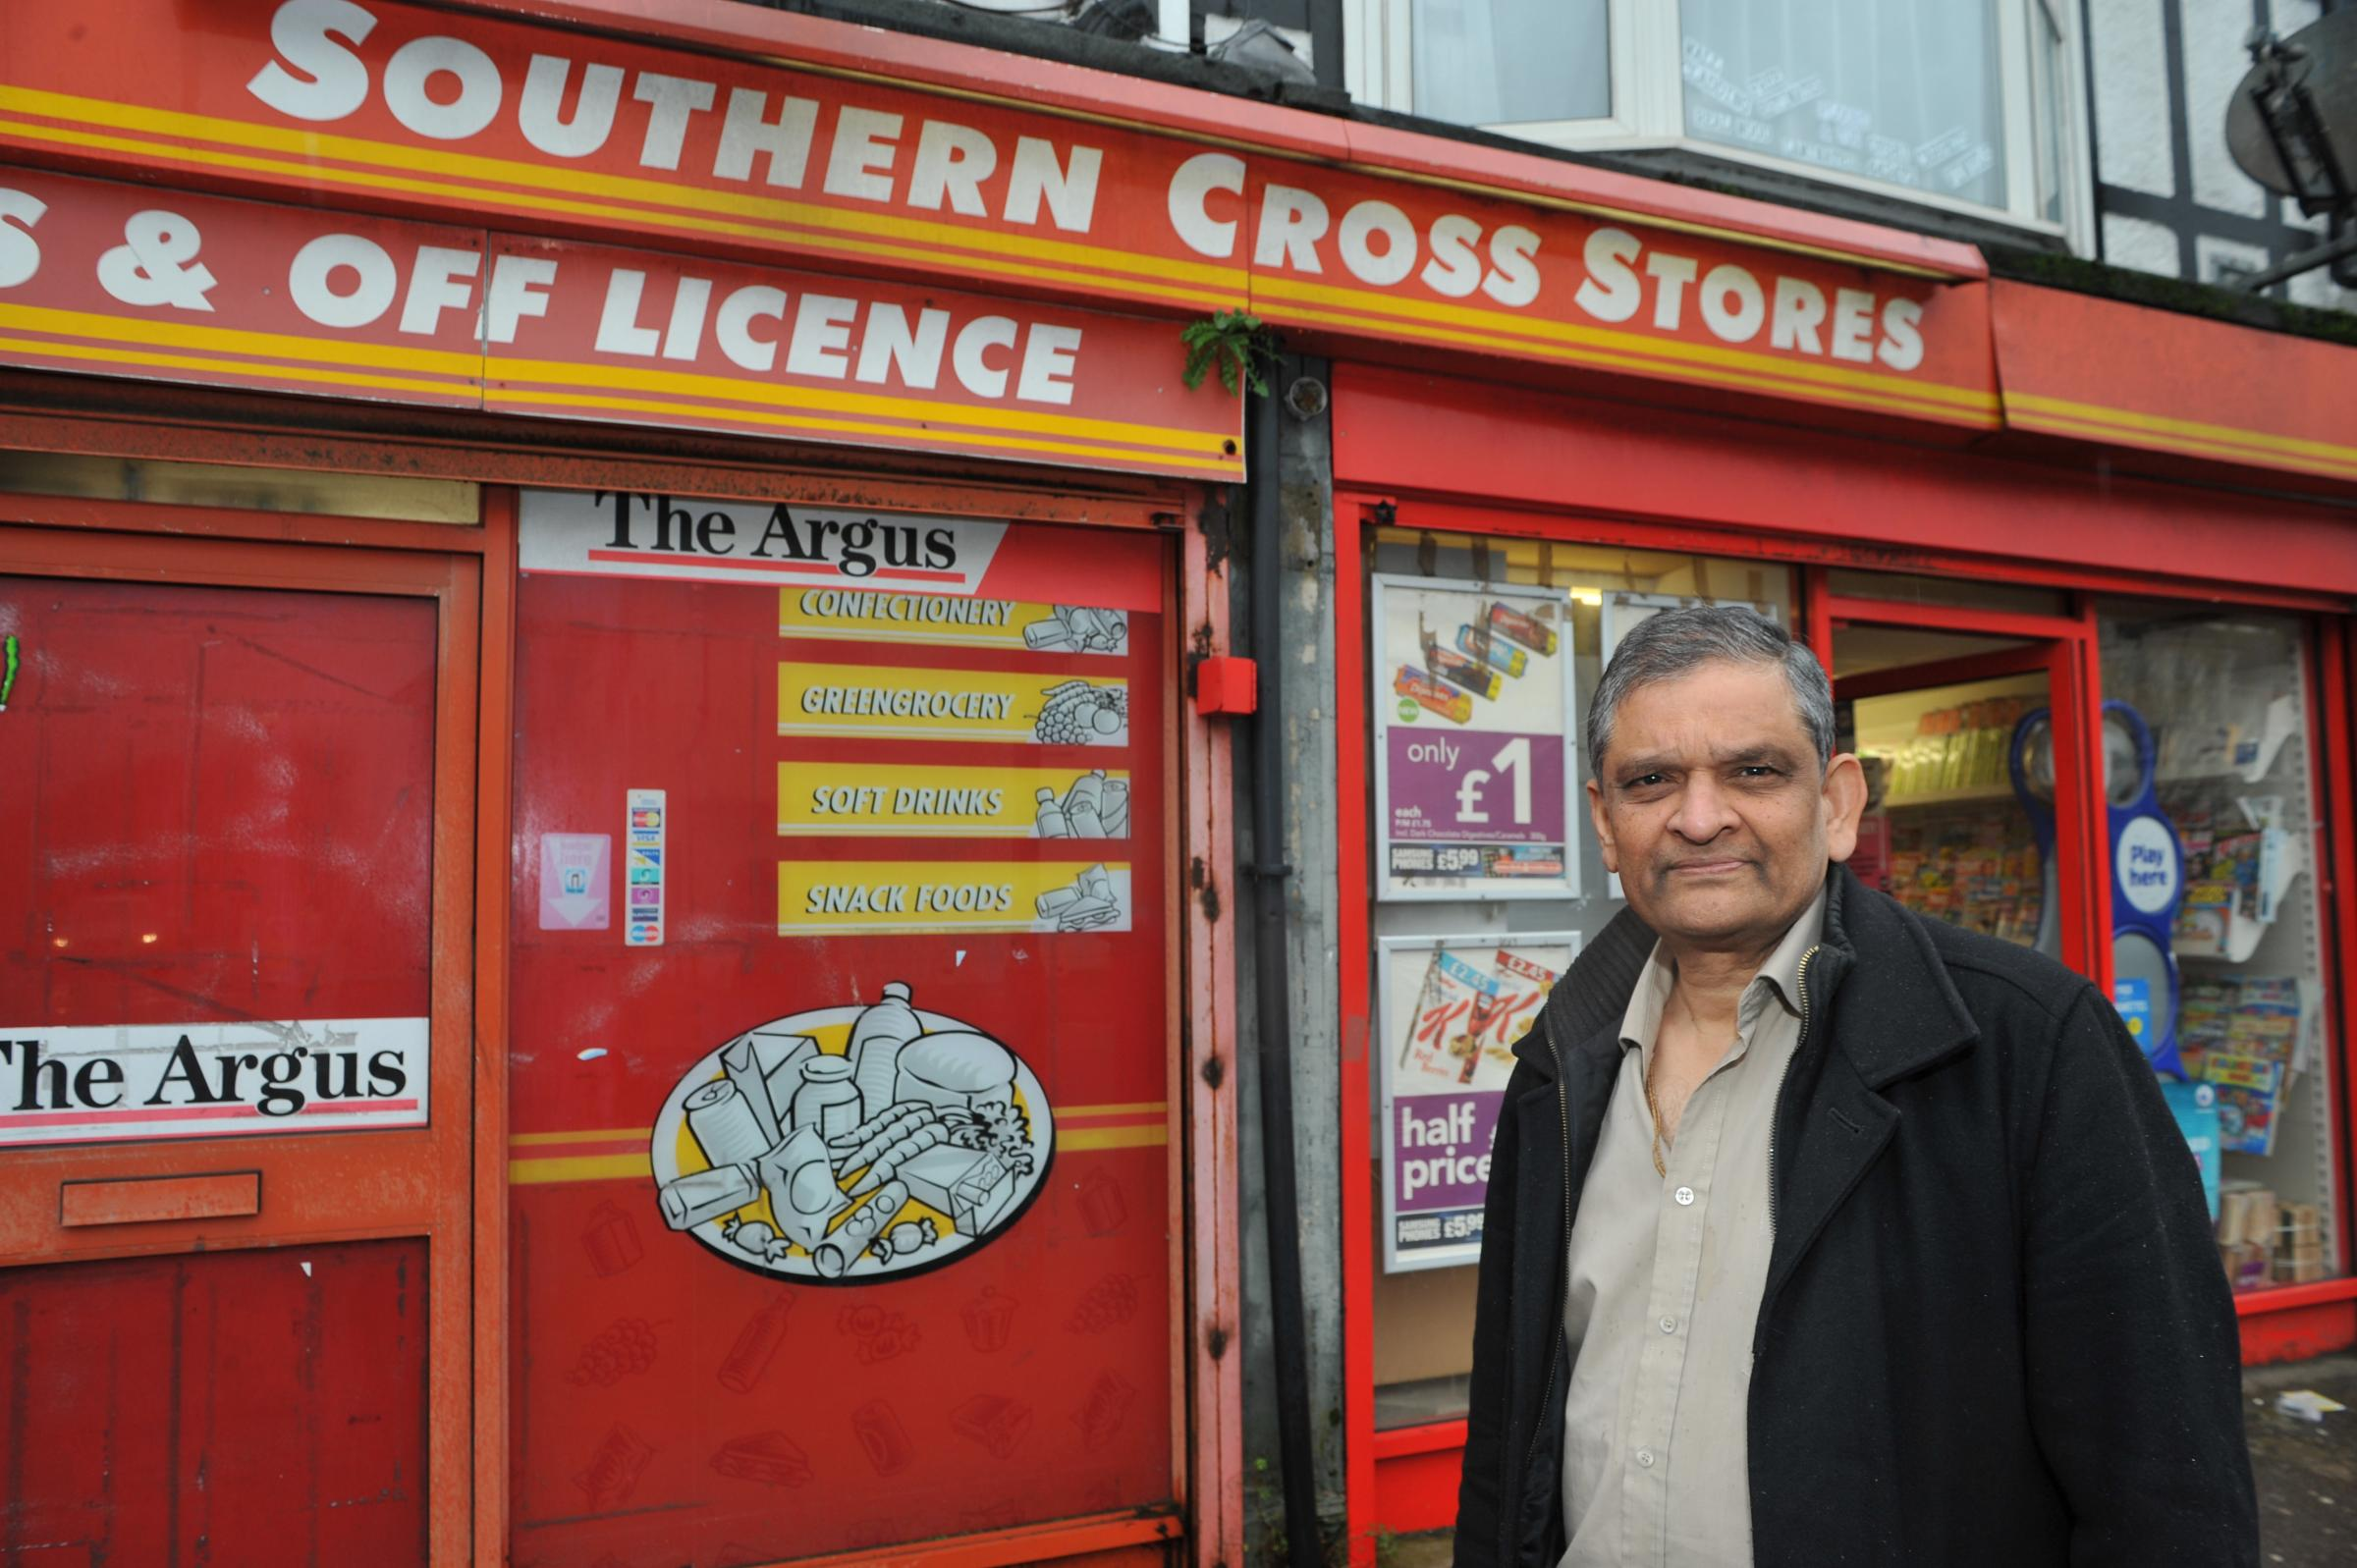 Illegal tobacco sales harming Brighton and Hove economy